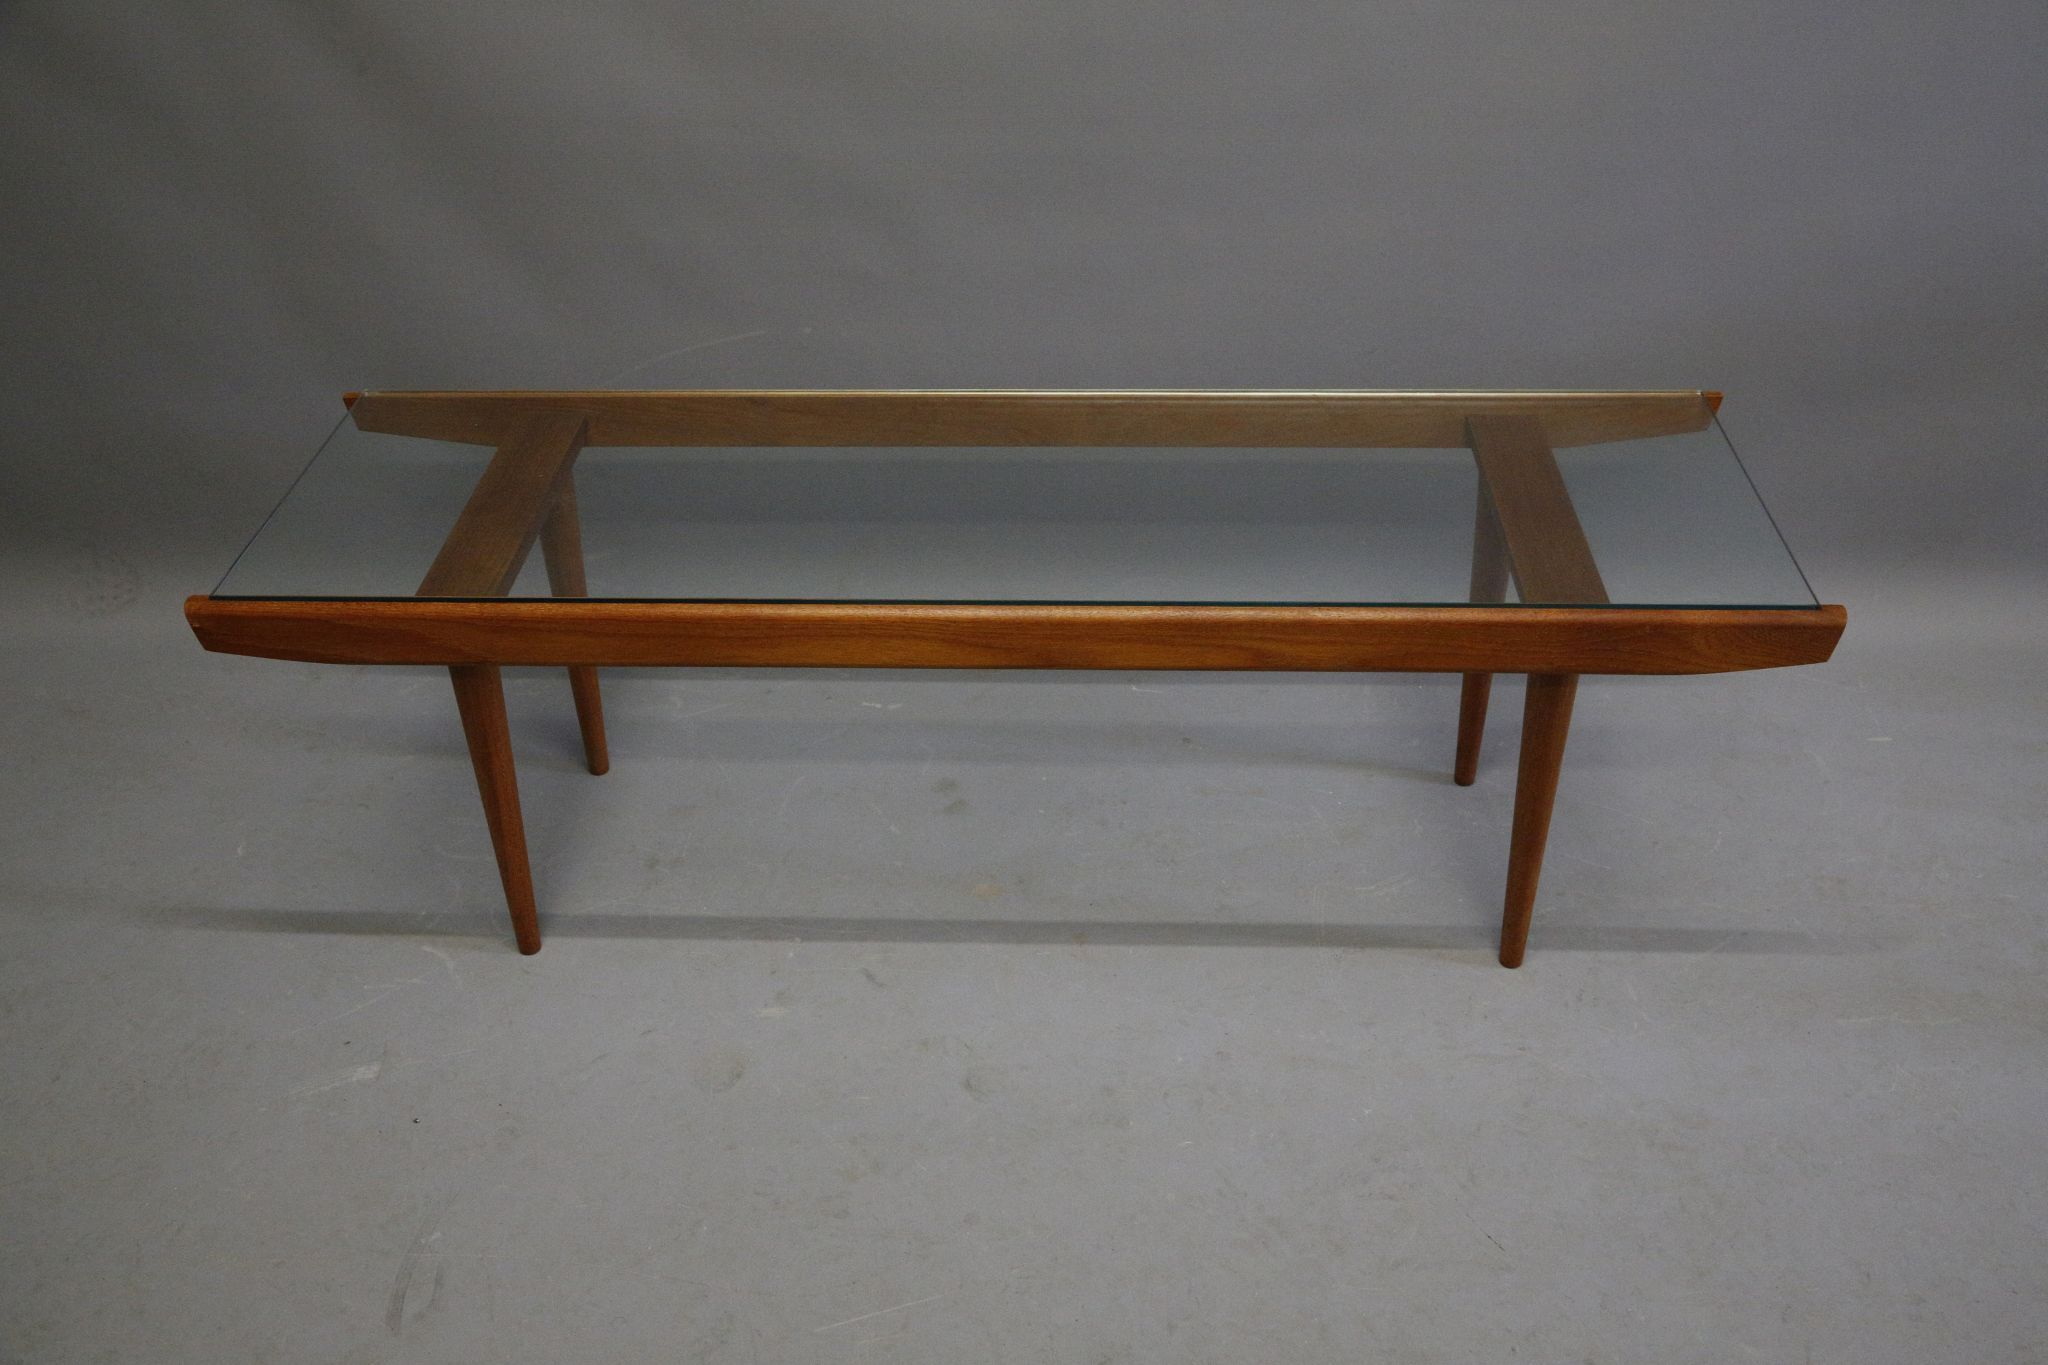 Amazing Lot 39   A 1960s Scandinavian Coffee Table With Glass Top And Teak Frame  (137cm